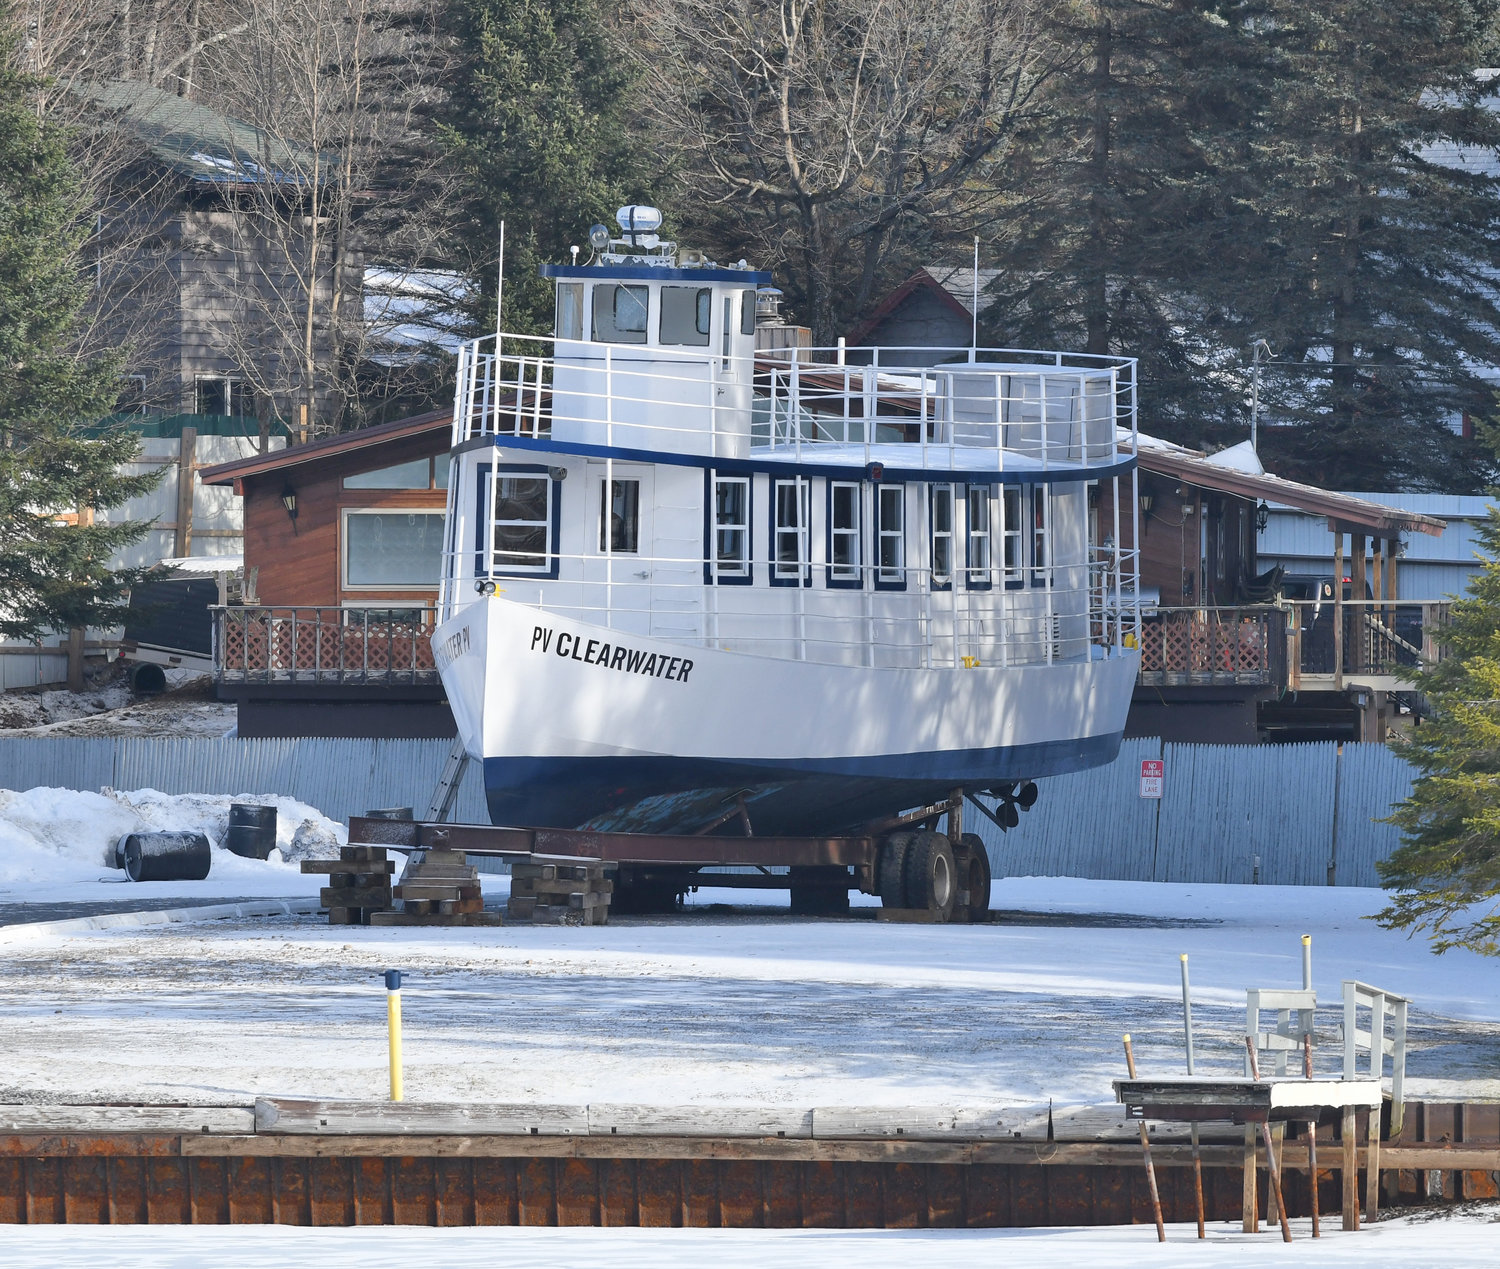 FROZEN AND DRY DOCK — The Clearwater lake-cruise boat dry docked in Old Forge with just inches of snow surrounding it on Wednesday.